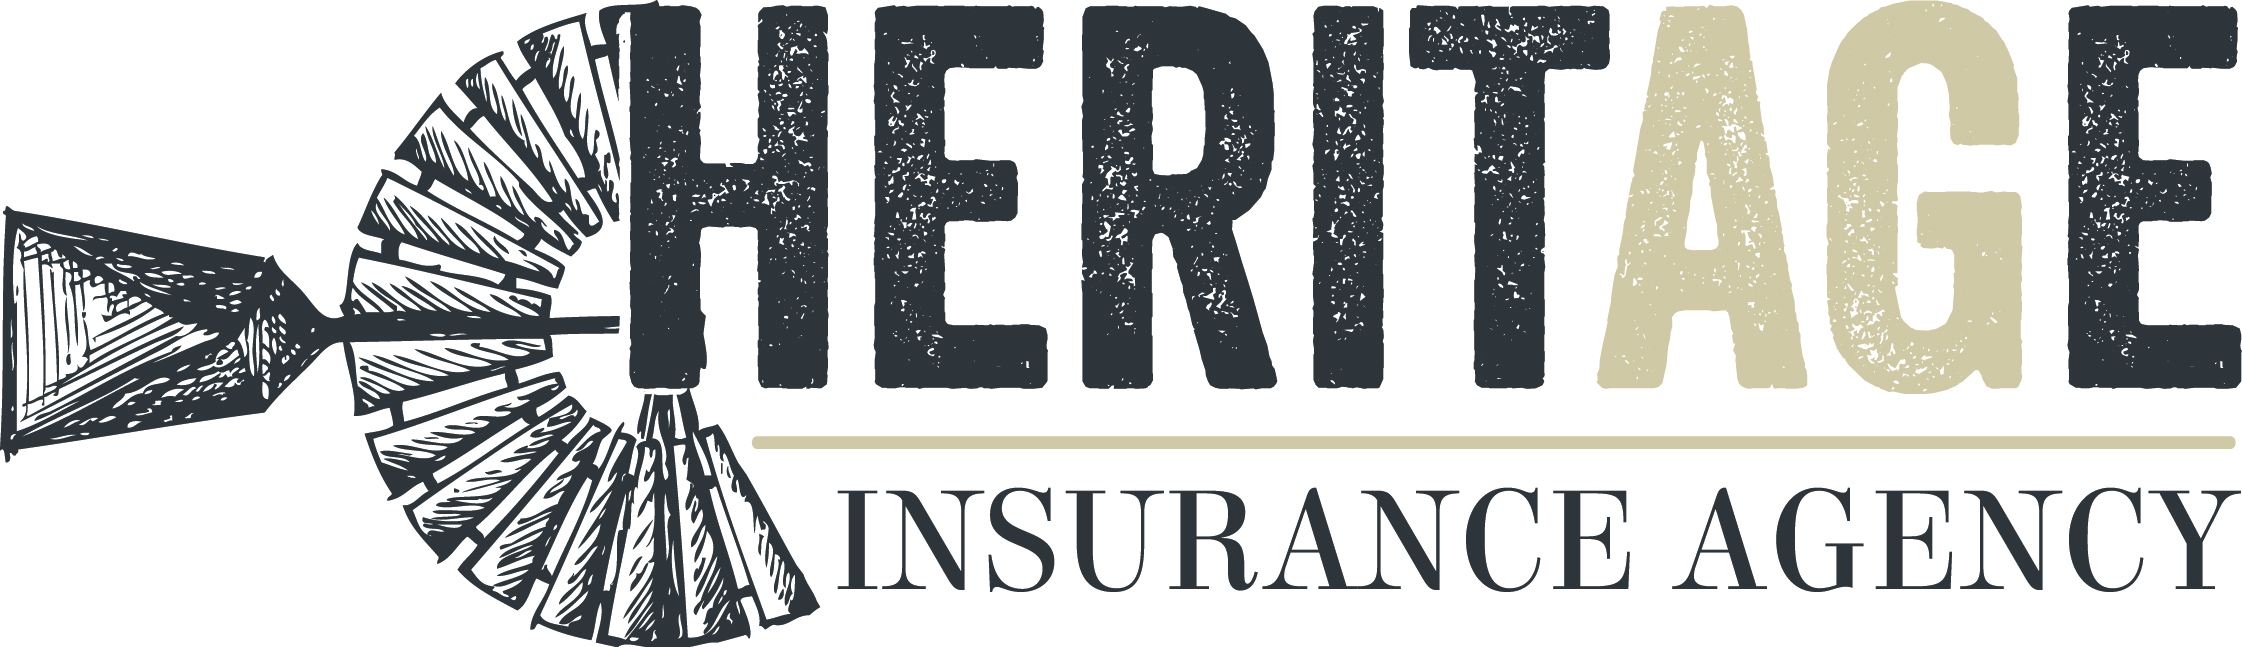 Heritage Insurance Agency - Orland